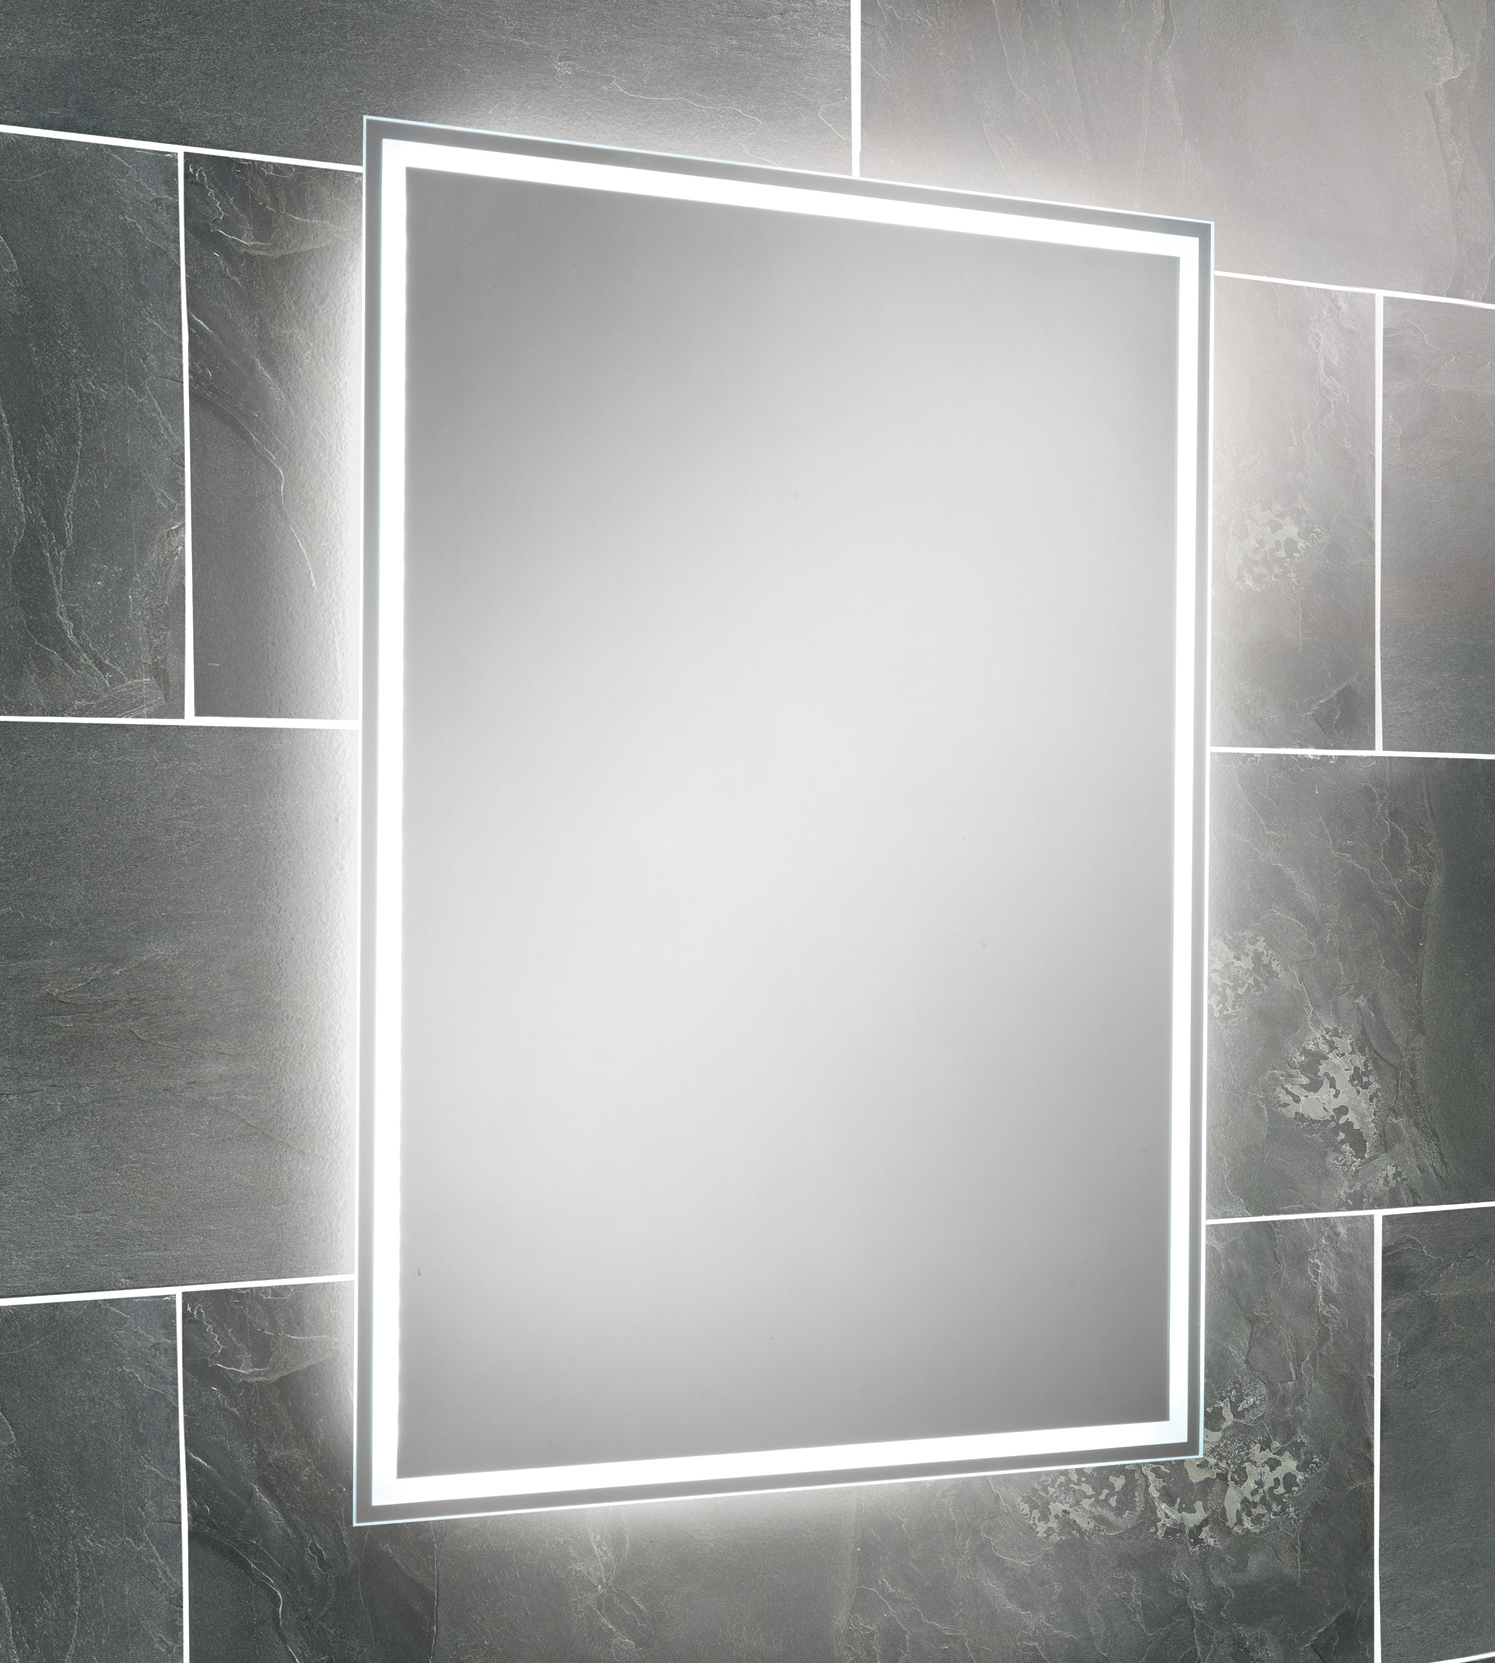 Illuminated Mirrors For Bathrooms